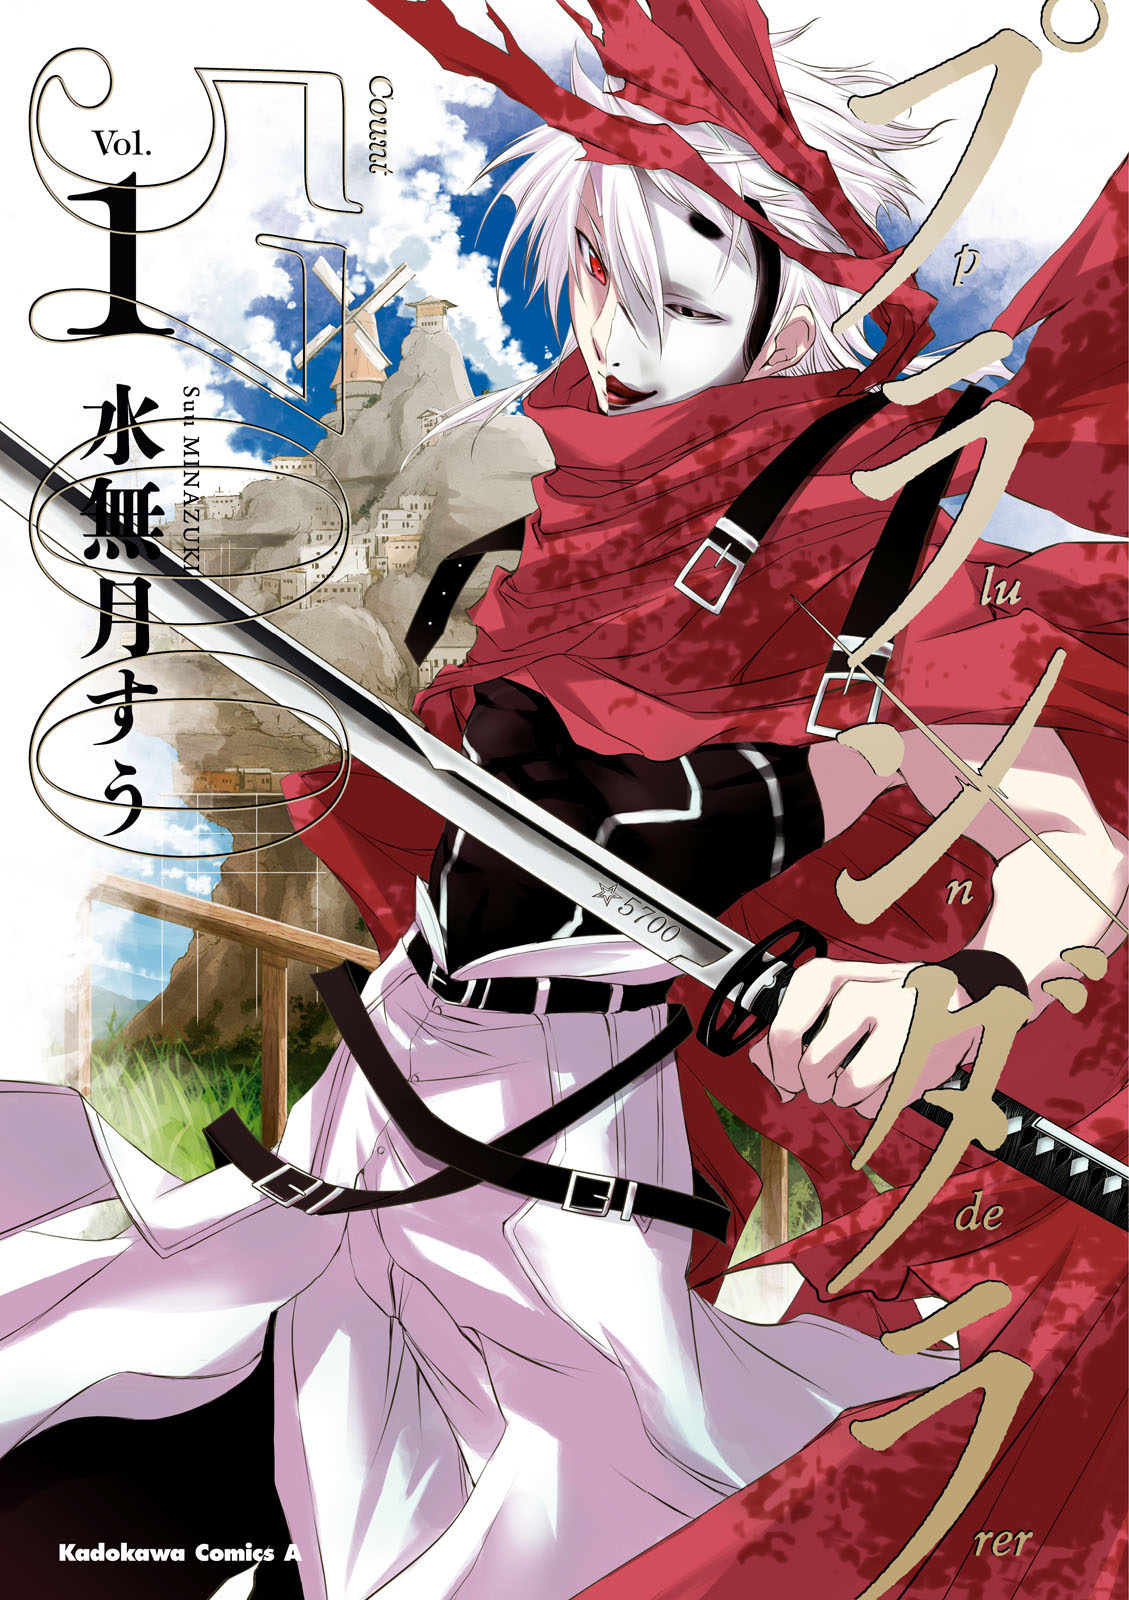 List of Chapters and Volumes | Plunderer Wiki | FANDOM